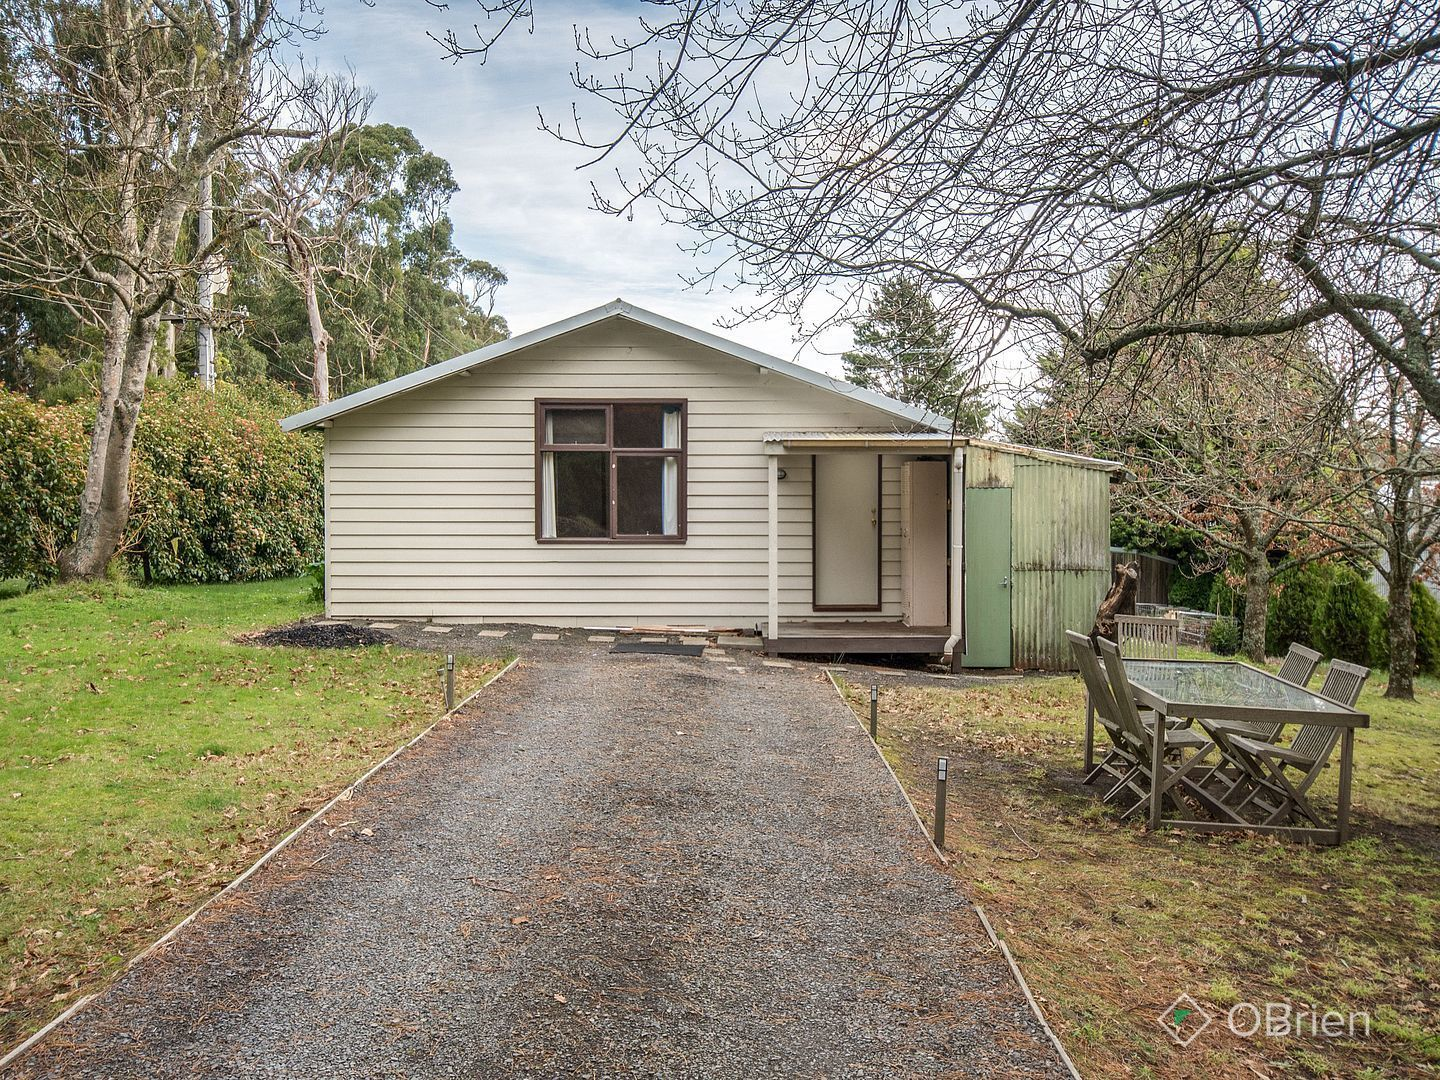 10a Old Menzies Creek Road, Selby VIC 3159, Image 0